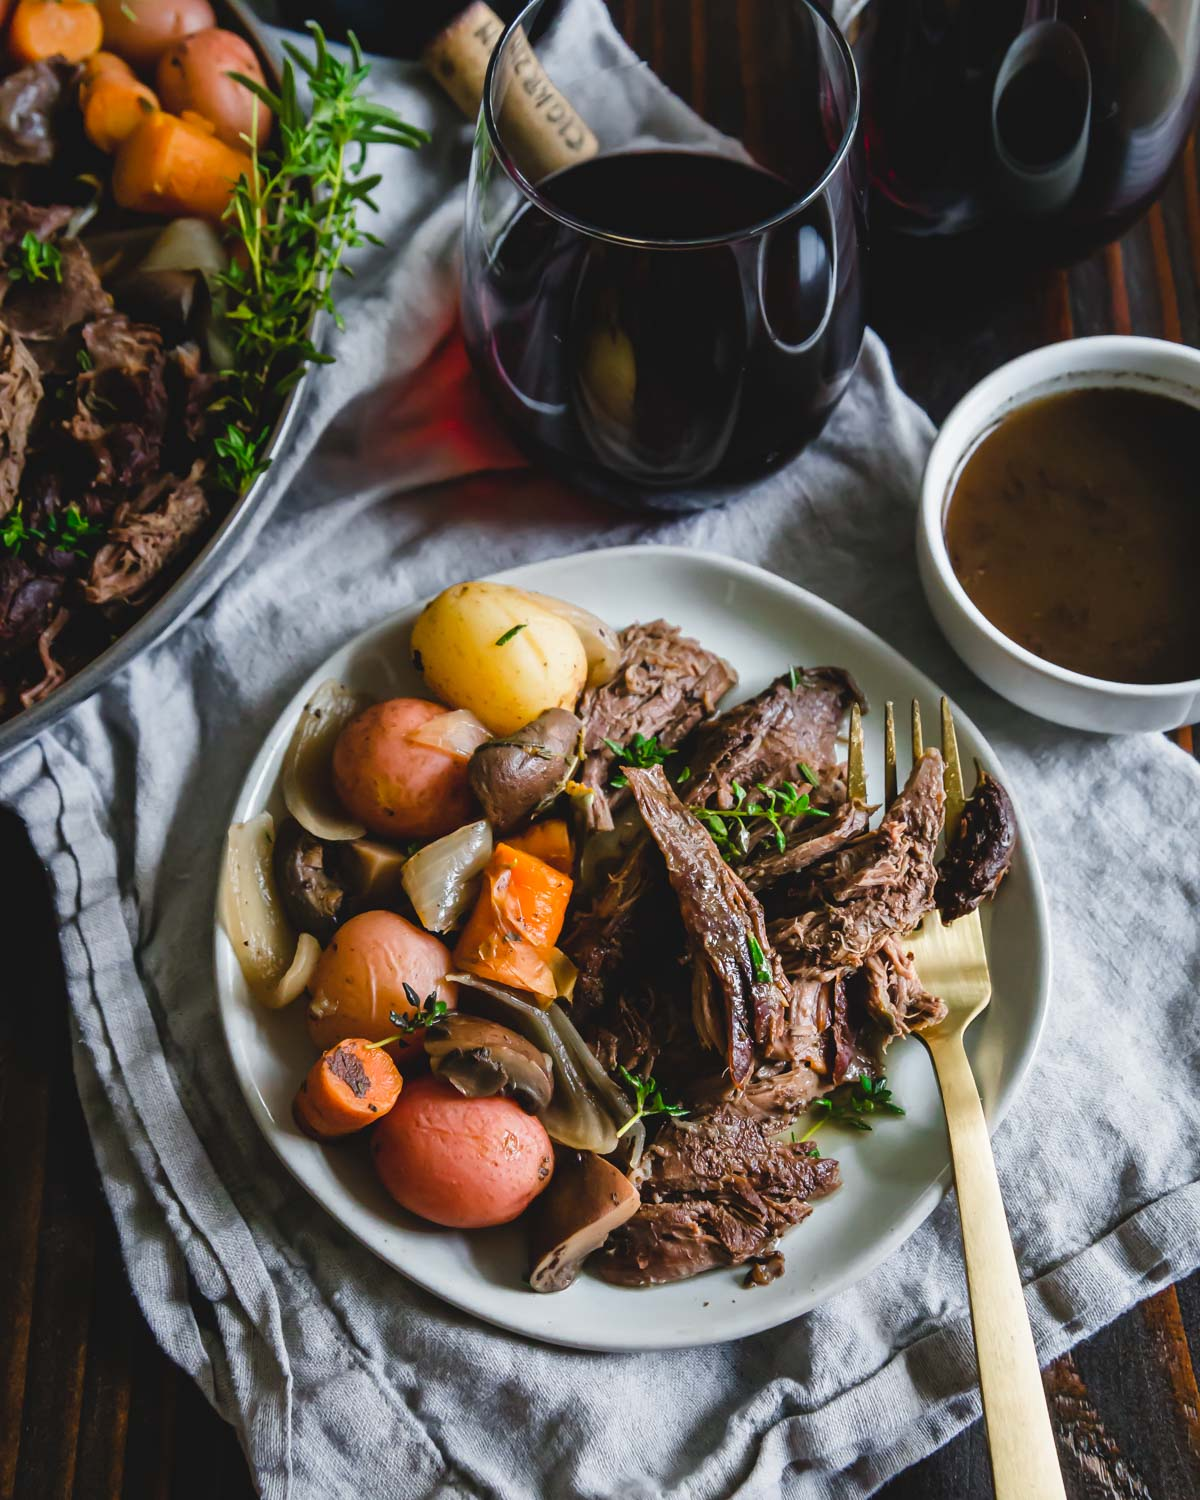 juicy and tender venison roast cooked in the Instant Pot with potatoes, mushrooms, onions and carrots in a red wine balsamic sauce